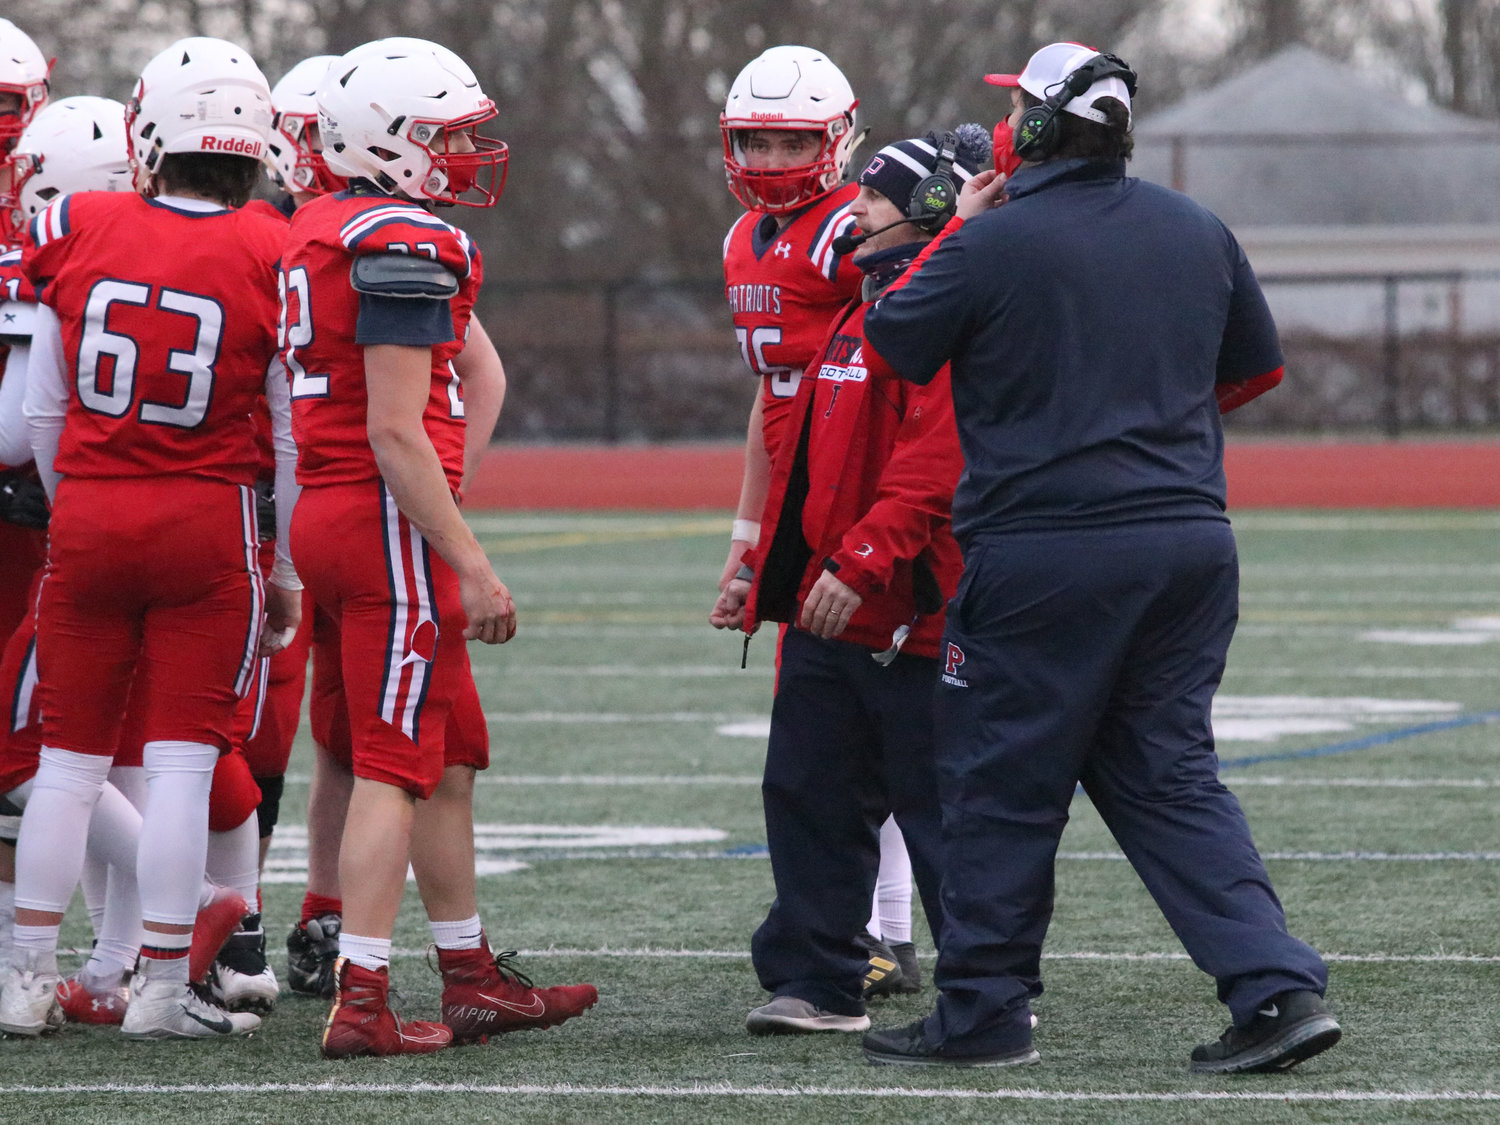 Patriots' head coach Dustin Almeida (in red) talks to his players.